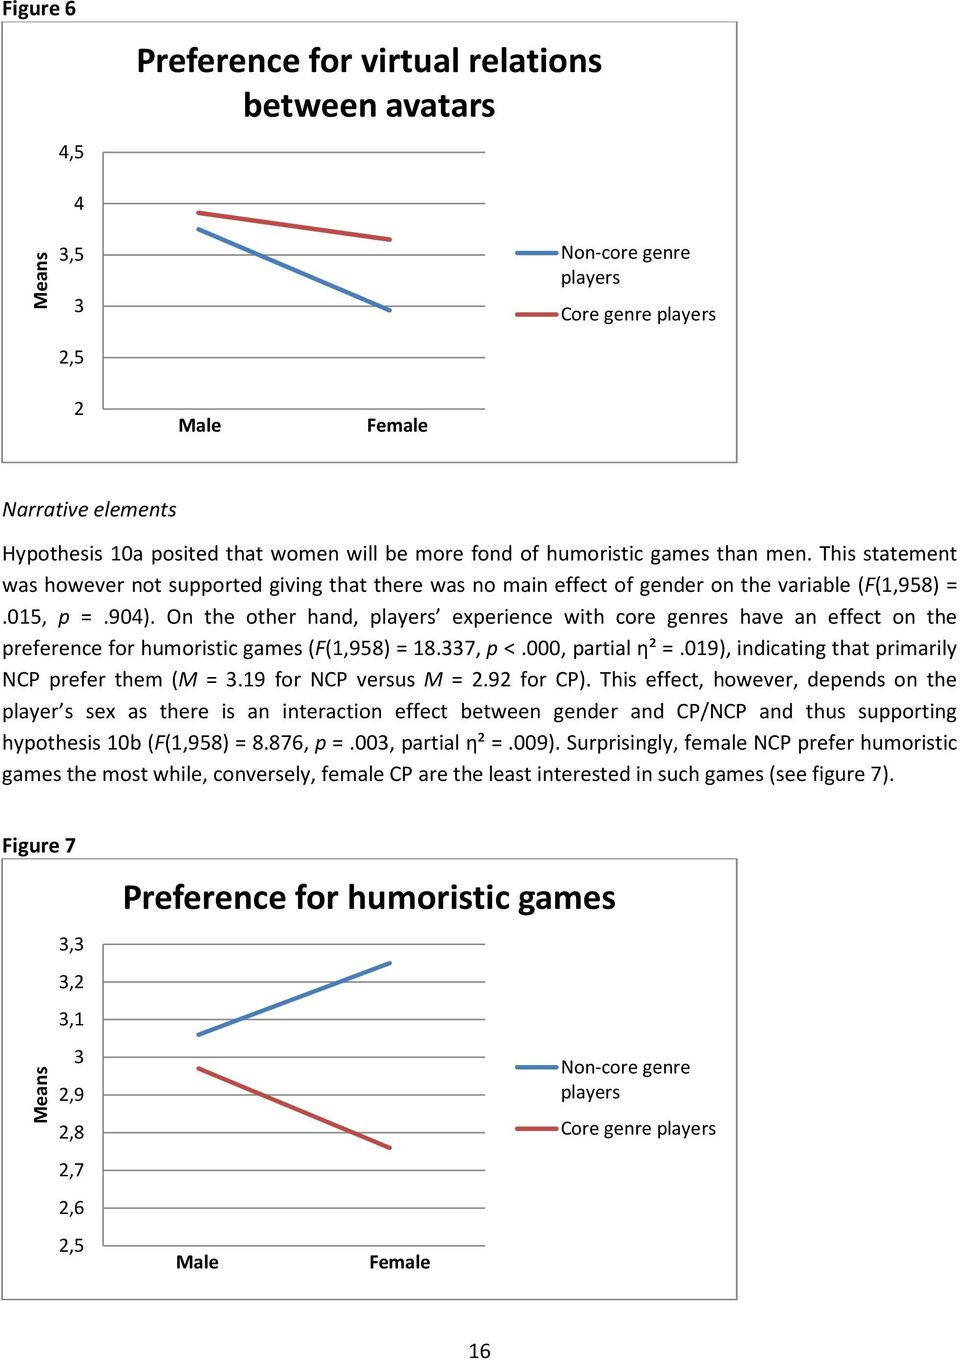 On the other hand, players experience with core genres have an effect on the preference for humoristic games (F(1,958) = 18.337, p <.000, partial η² =.